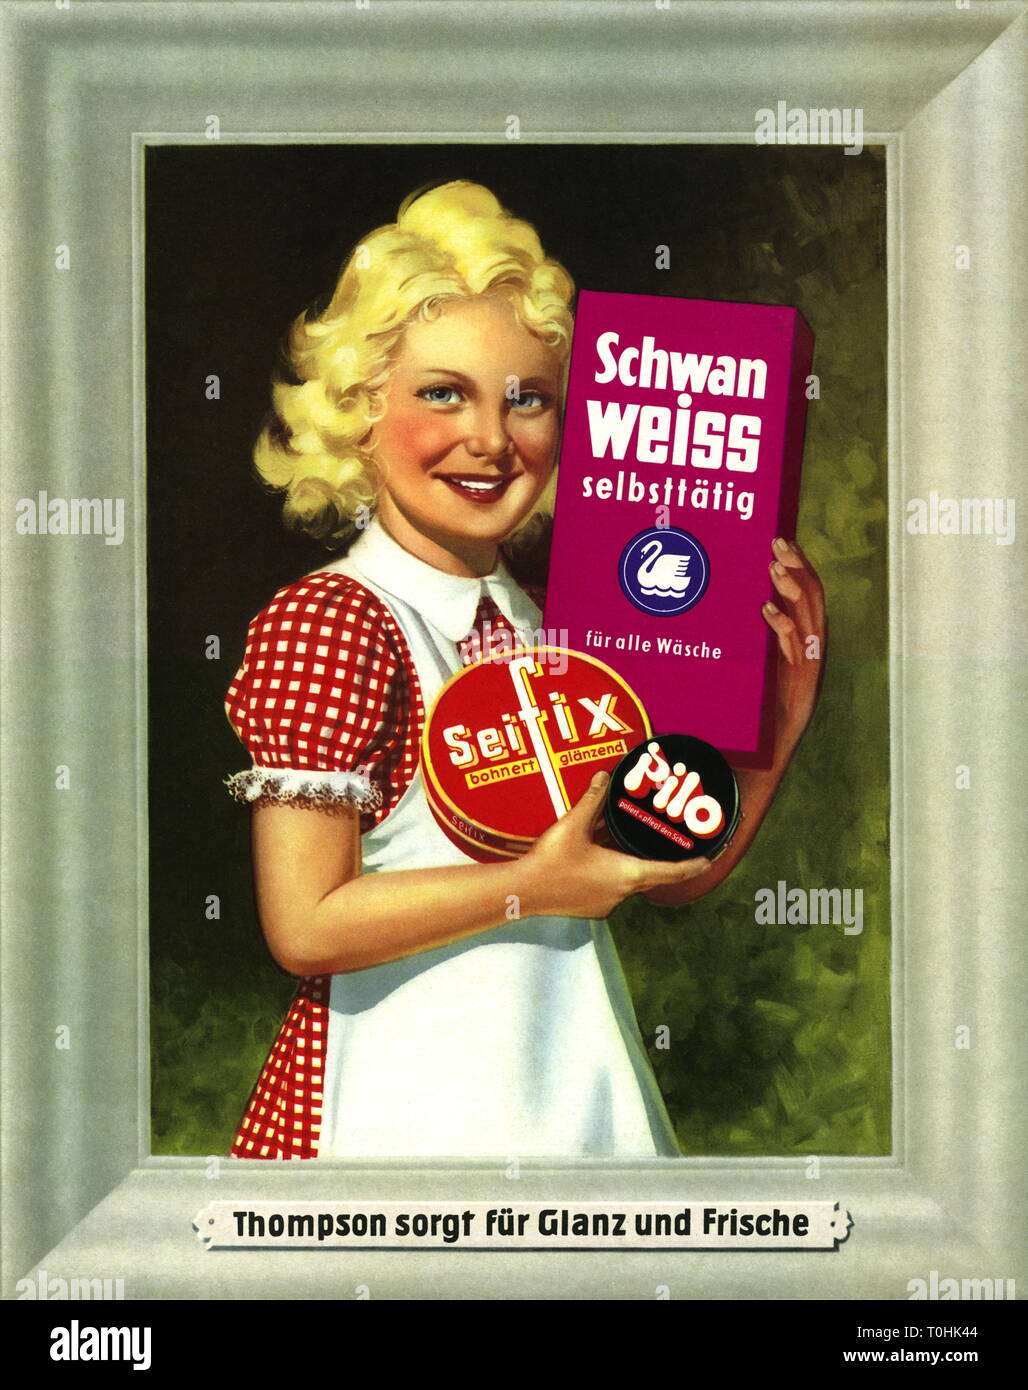 advertising, household, young girl with washing powder, Thompson Company, 'Schwanweiss', floor wax 'Seifix', shoe cream 'Pilo', slogan: 'Thompson sorgt für Glanz und Frische', Düsseldorf, Germany, circa 1938, Additional-Rights-Clearance-Info-Not-Available - Stock Image